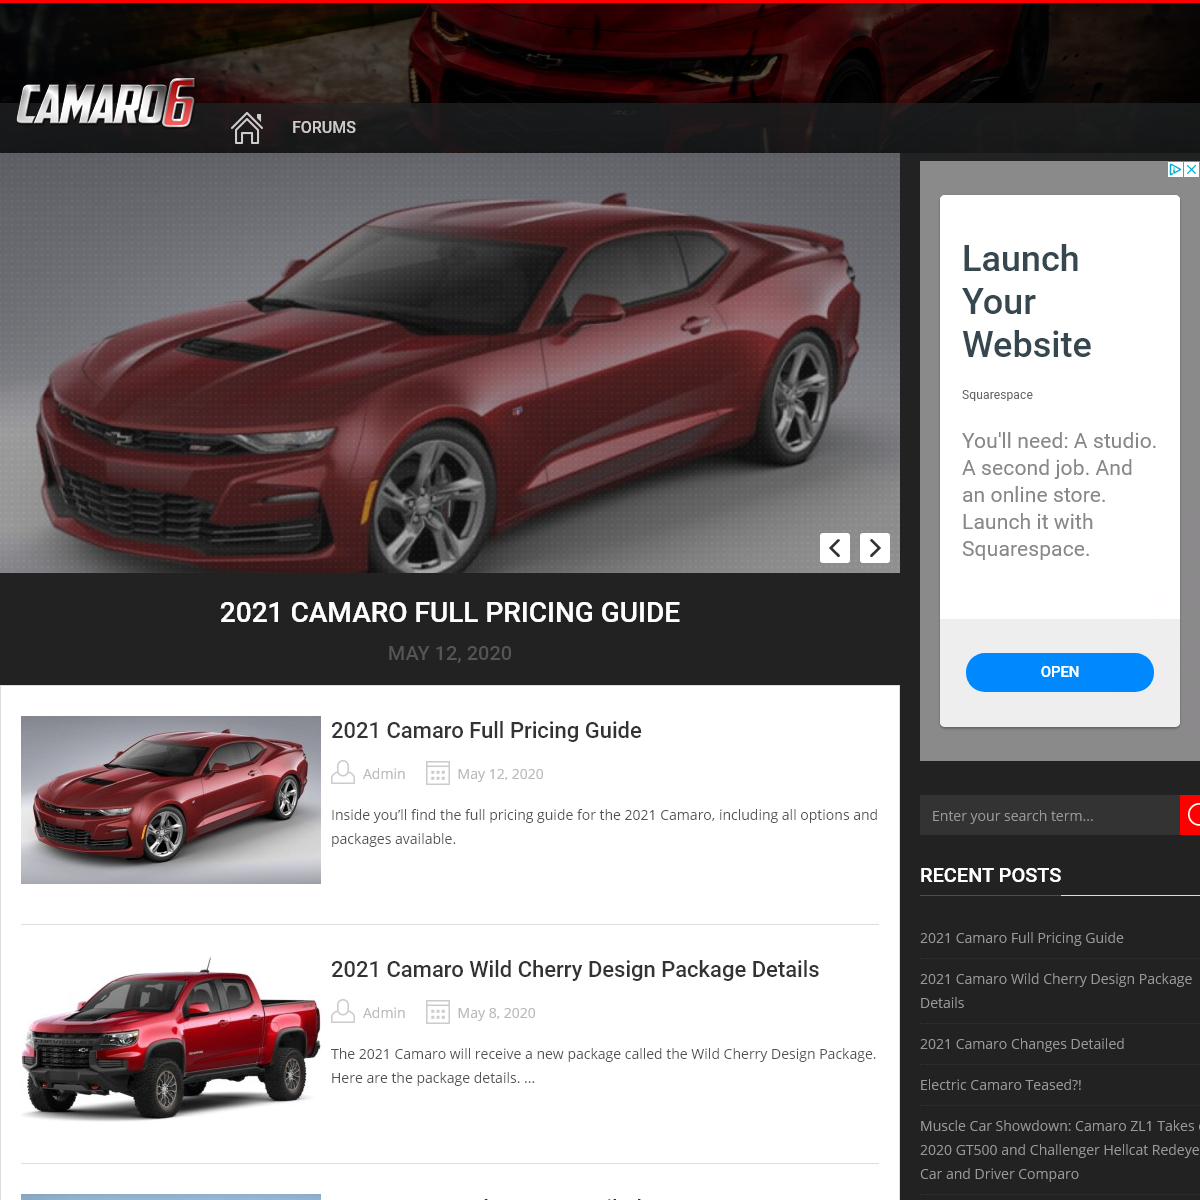 6th gen 2016+ Camaro forums, news, reviews, and more – Camaro6 - 6th generation 2016 Camaro forums, news, blog, reviews, wallp